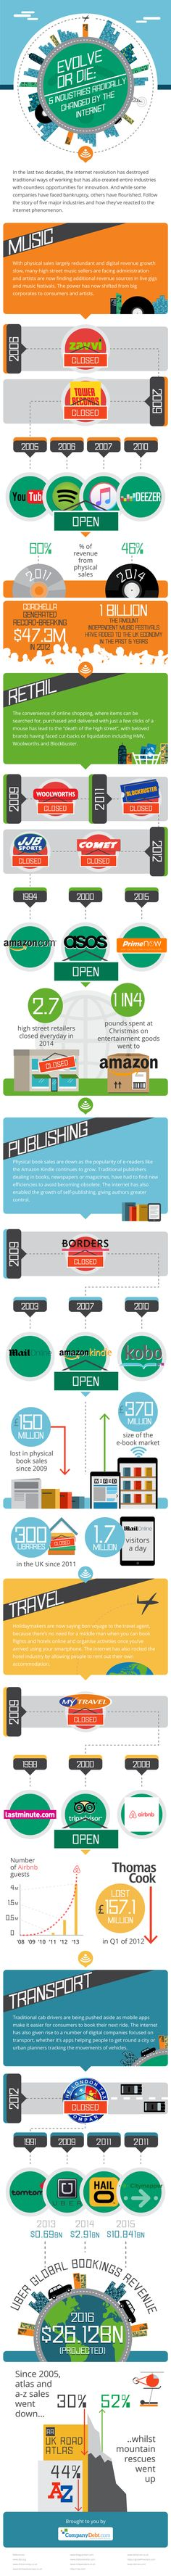 Evolve or Die: 5 Industries Drastically Changed By The Internet #infographic #Business #Internet